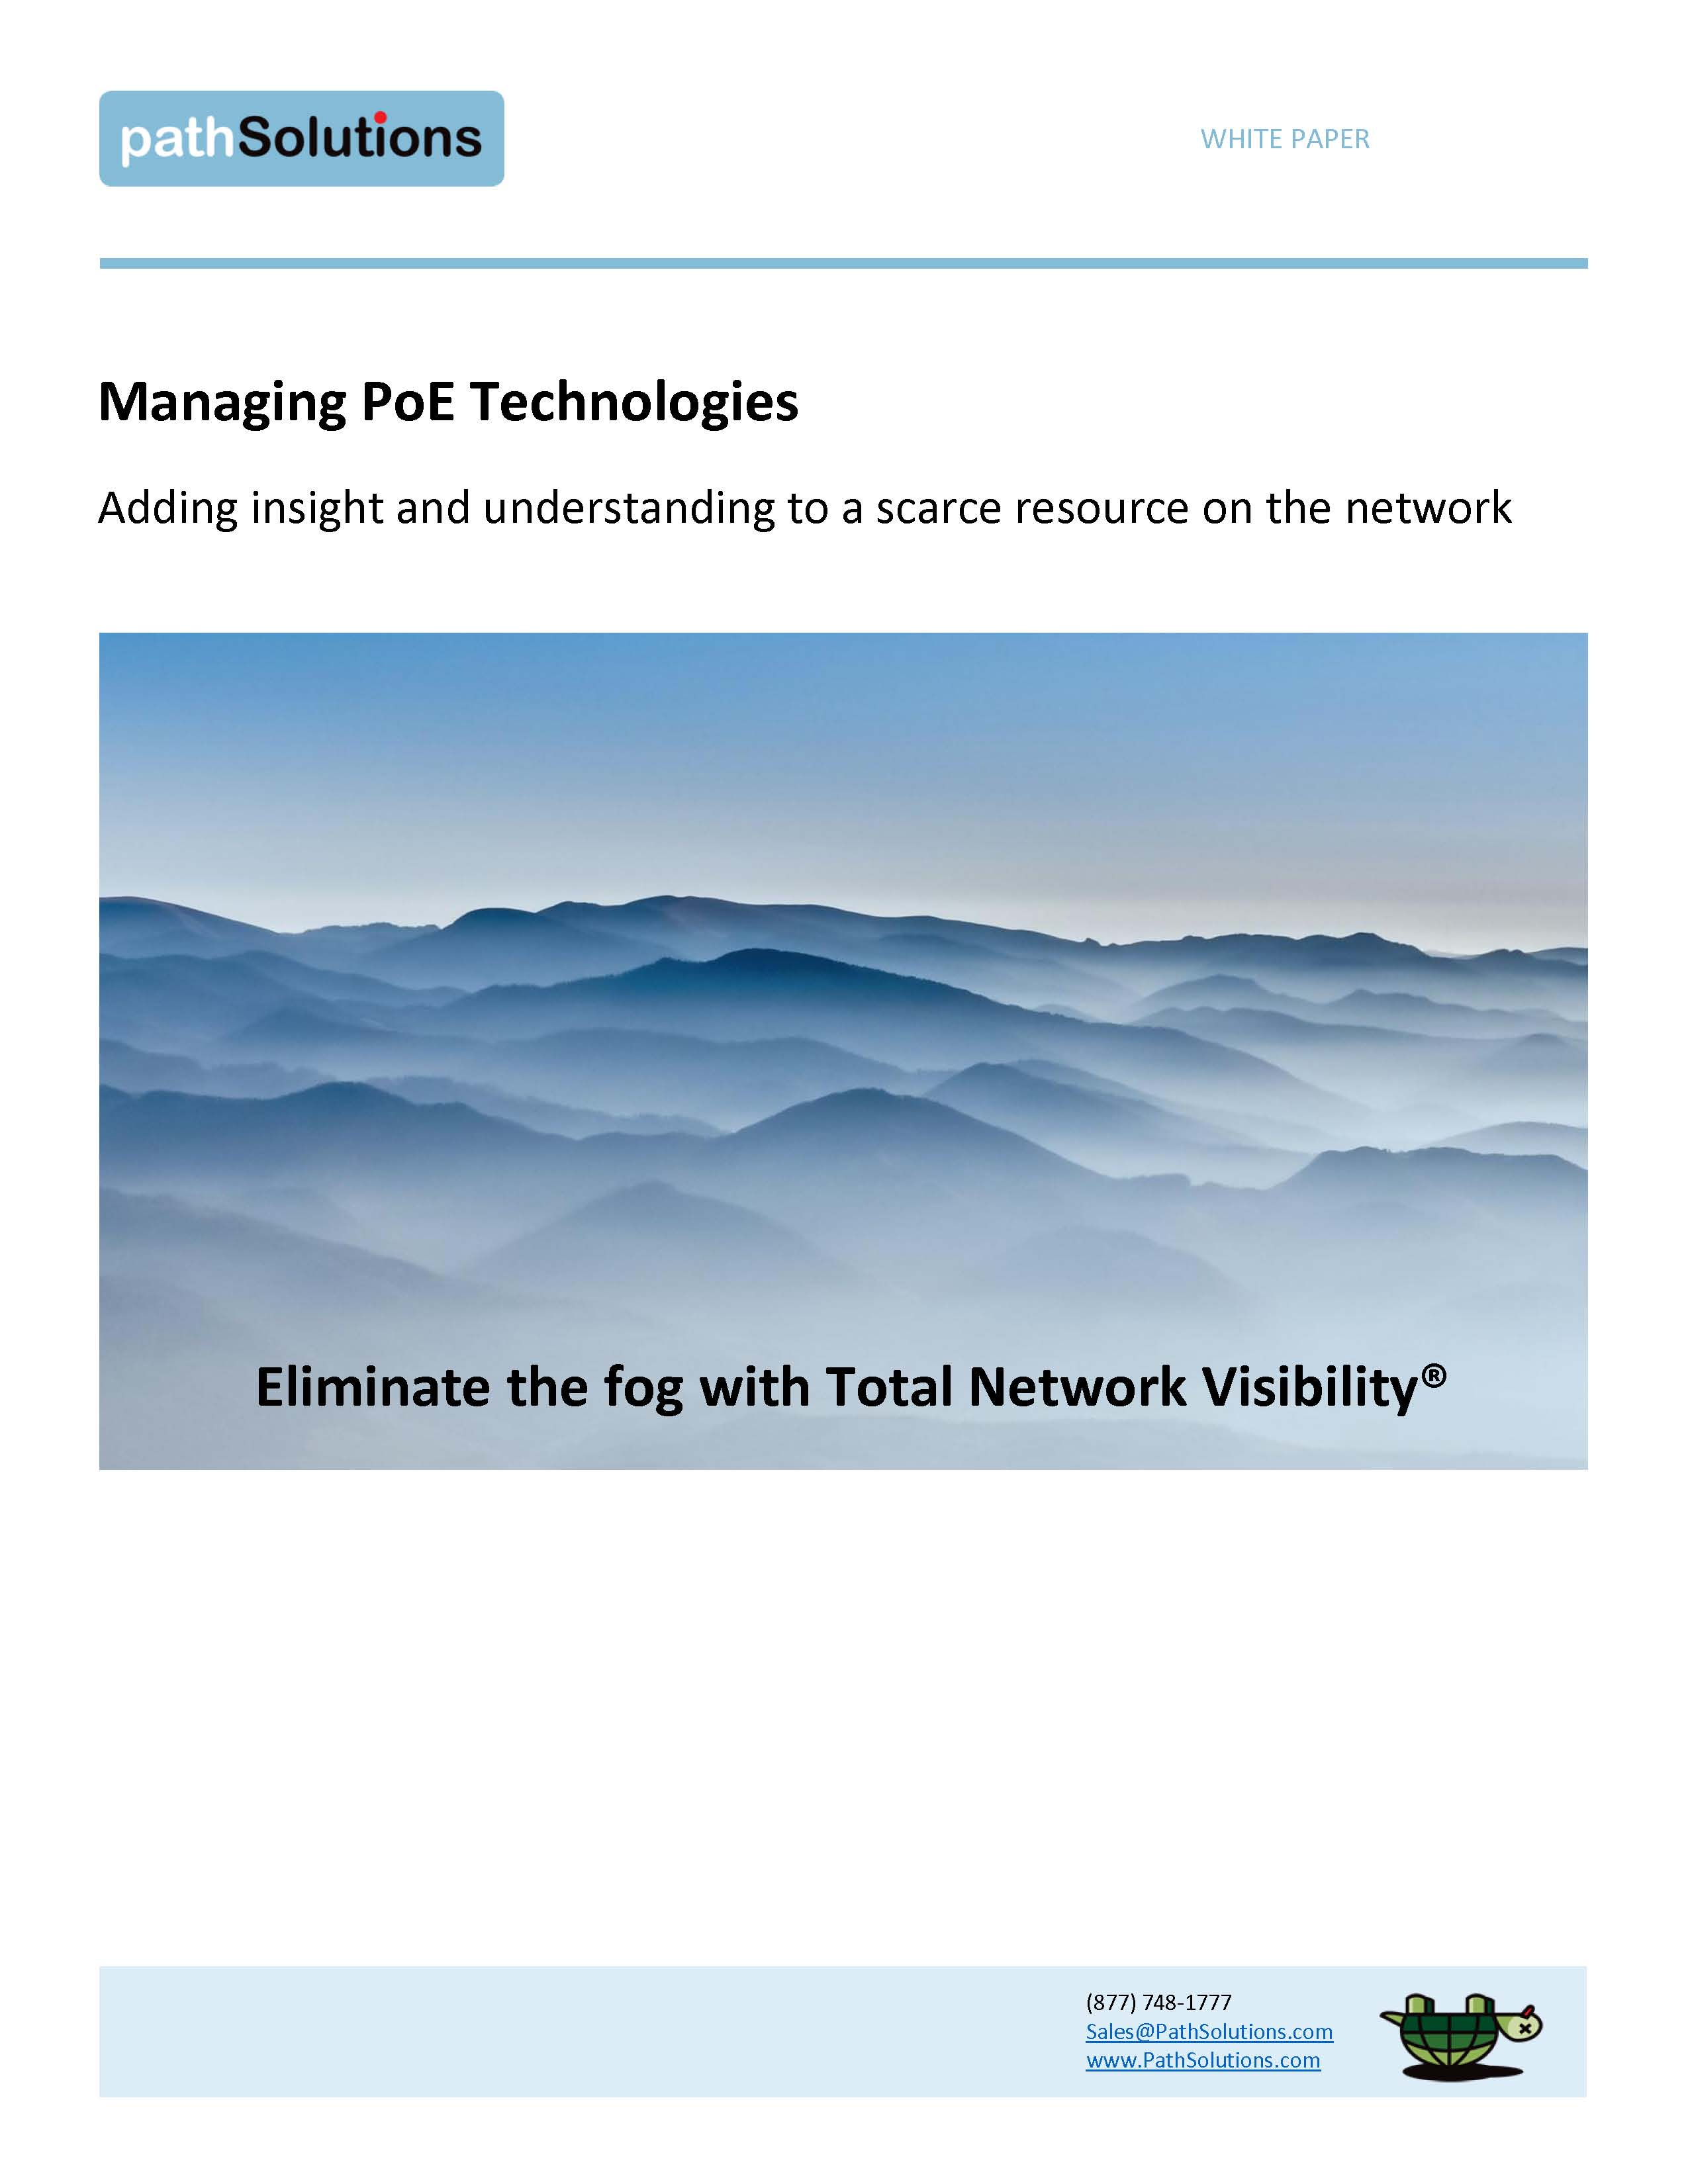 whitepaper managing PoE technologies, cover